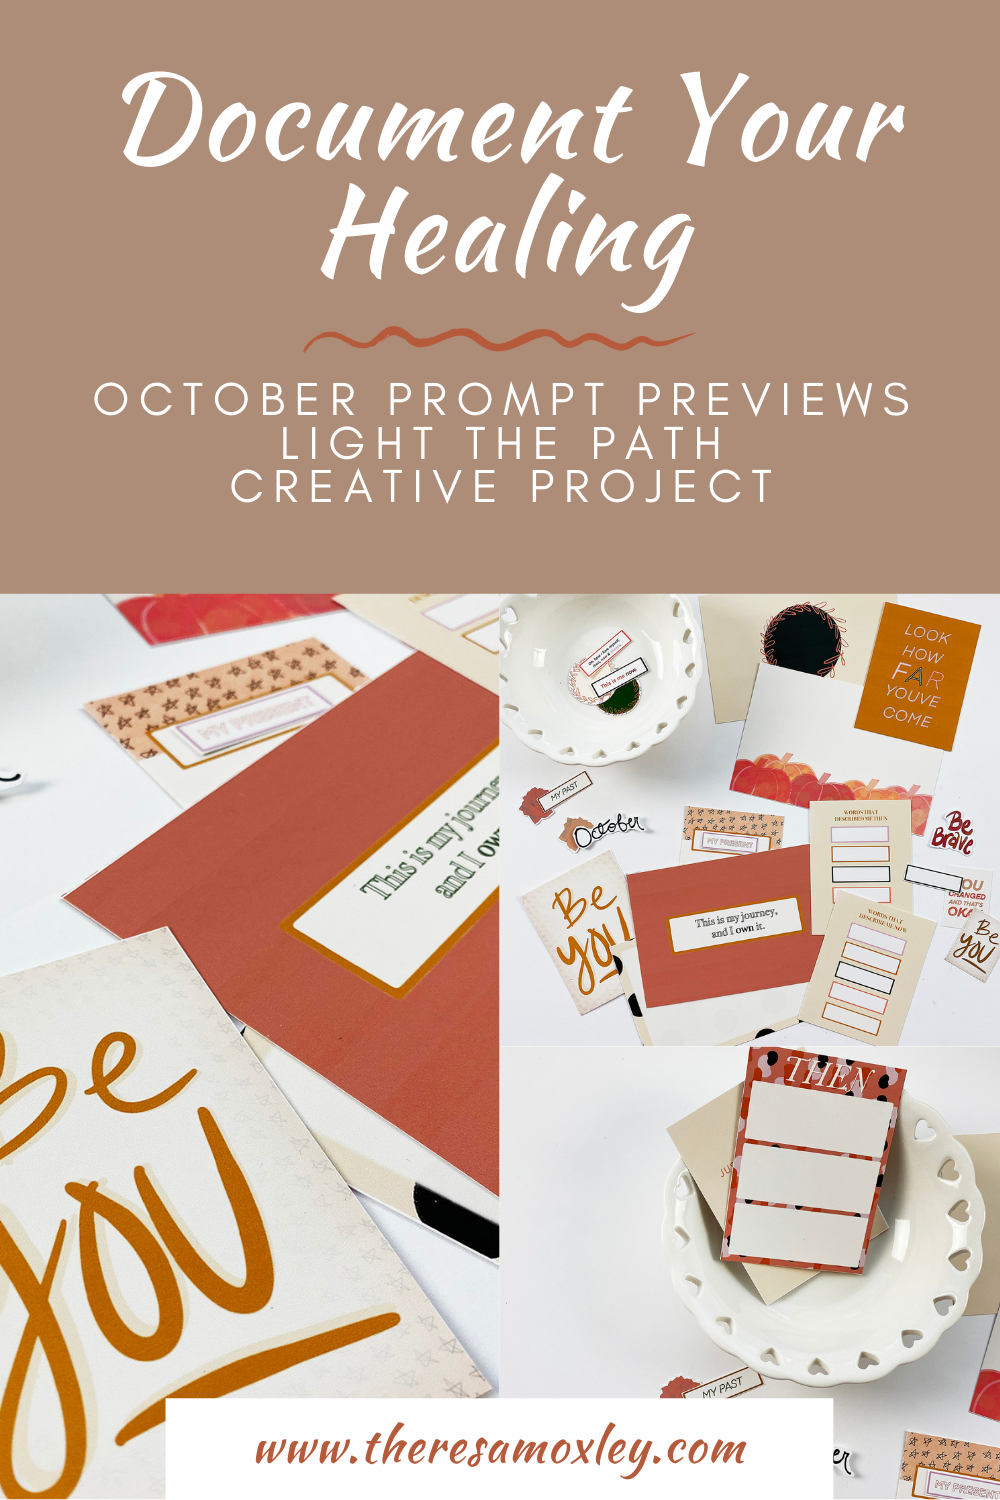 Light The Path October Prompt Previews!